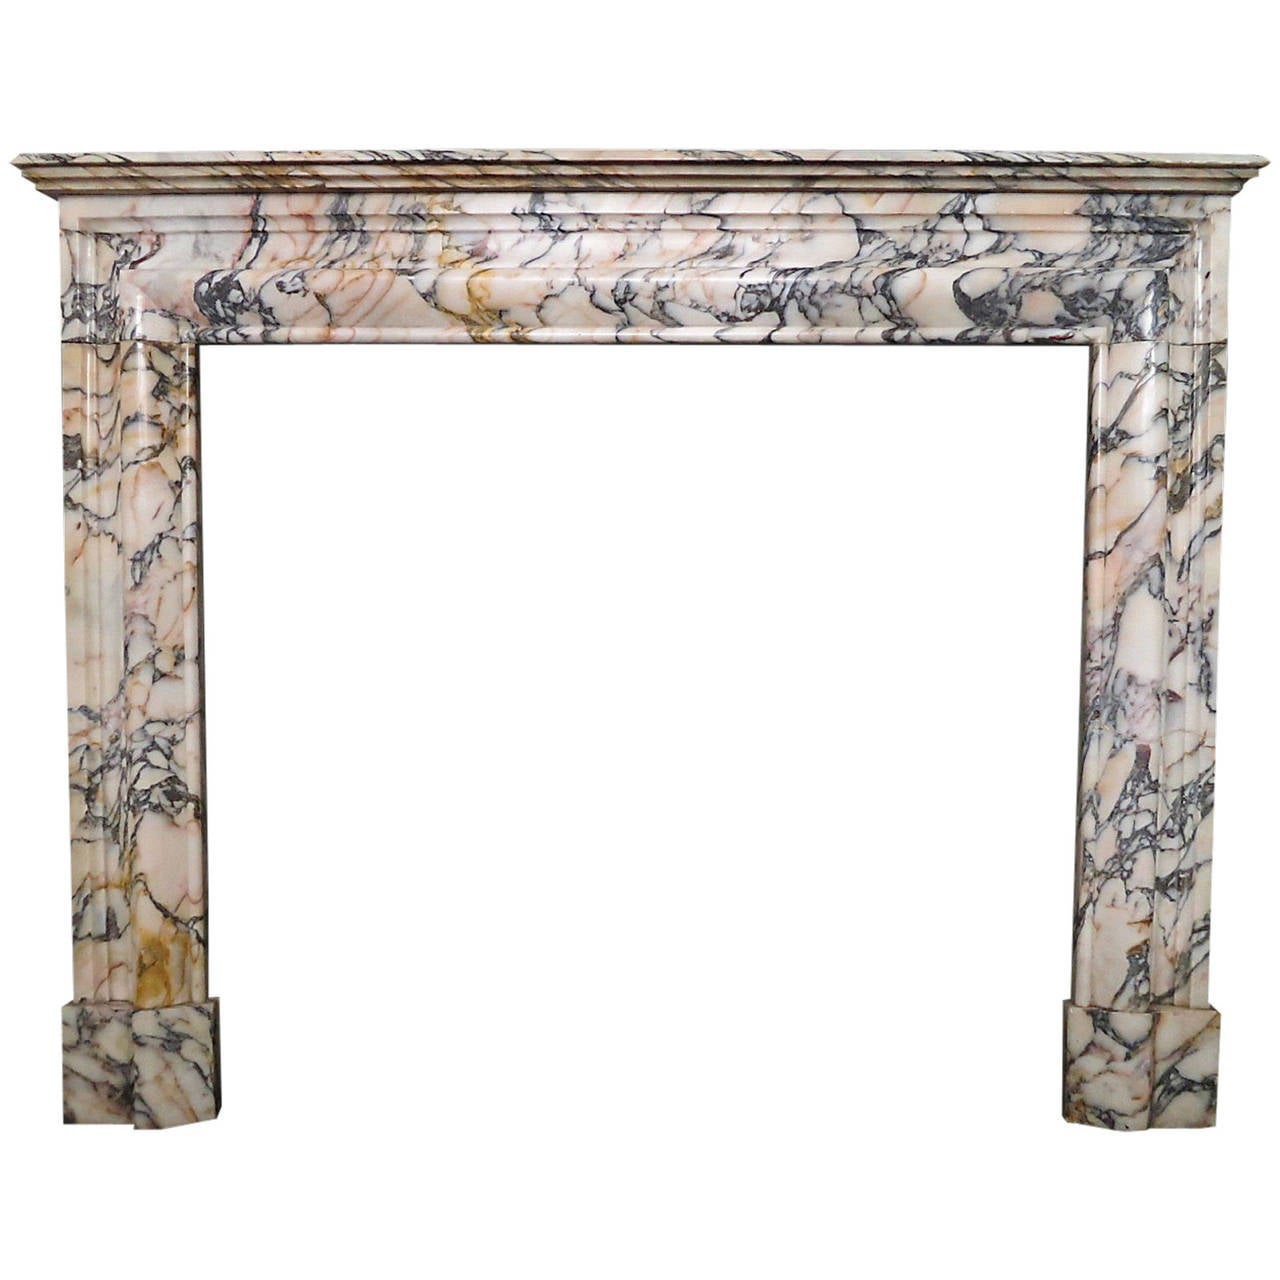 19th Century French Bolection Breche Violette Fireplace Mantel